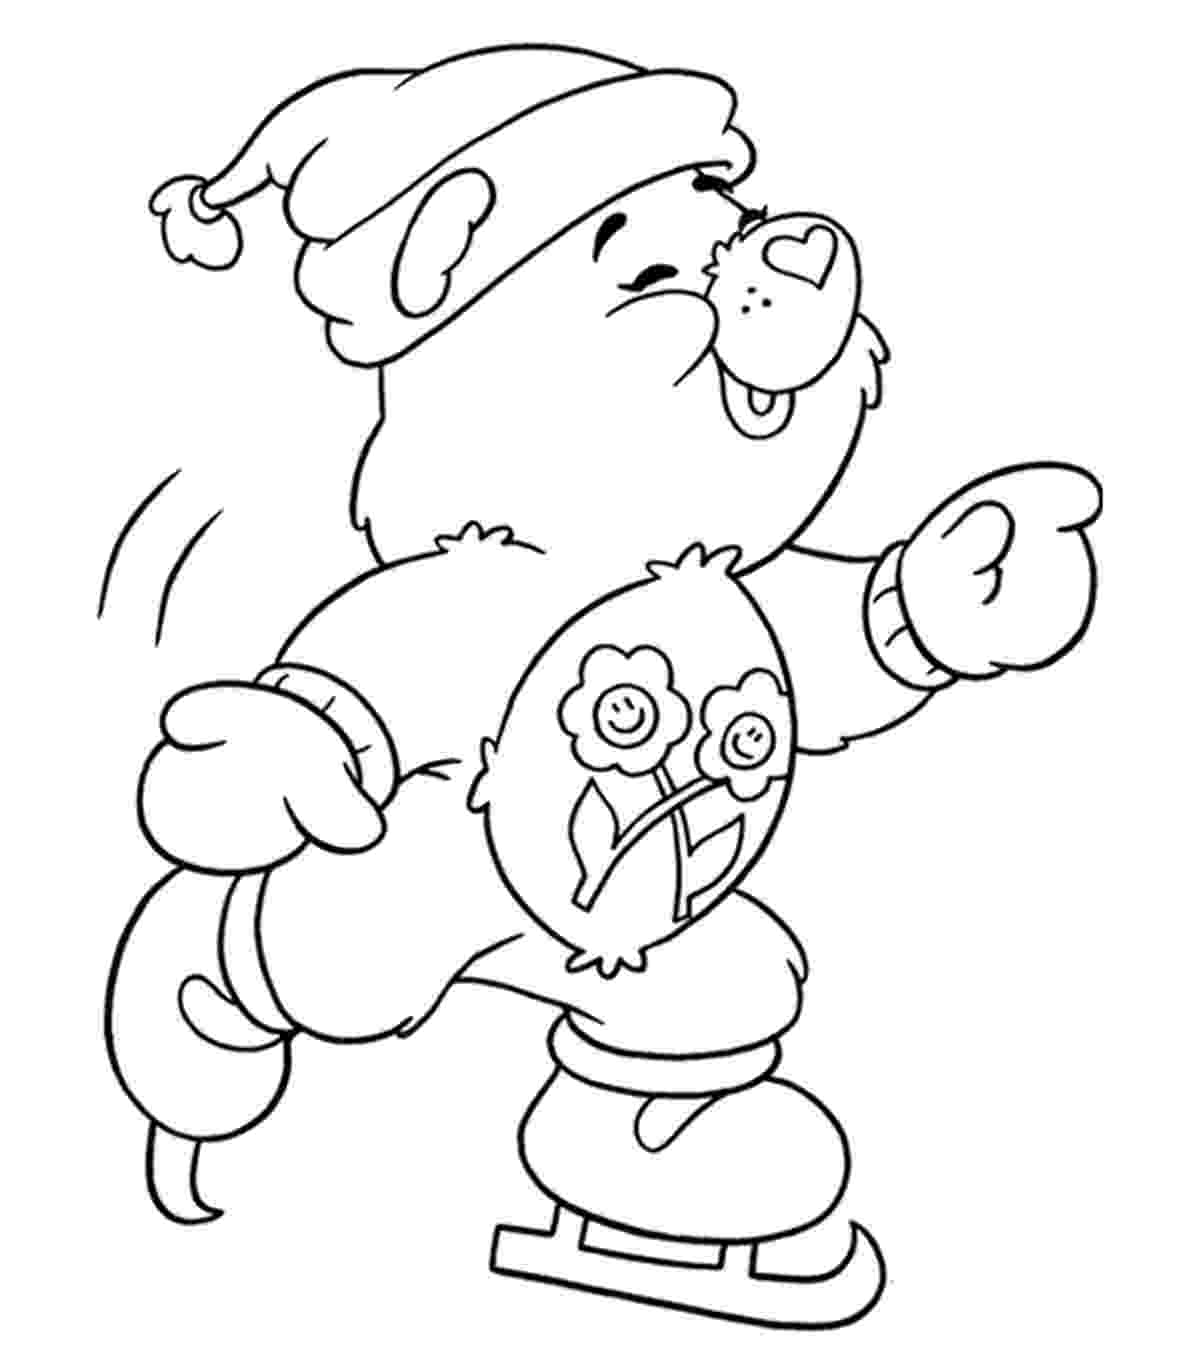 winter printable coloring pages free free printable winter coloring pages for kids printable winter free coloring pages